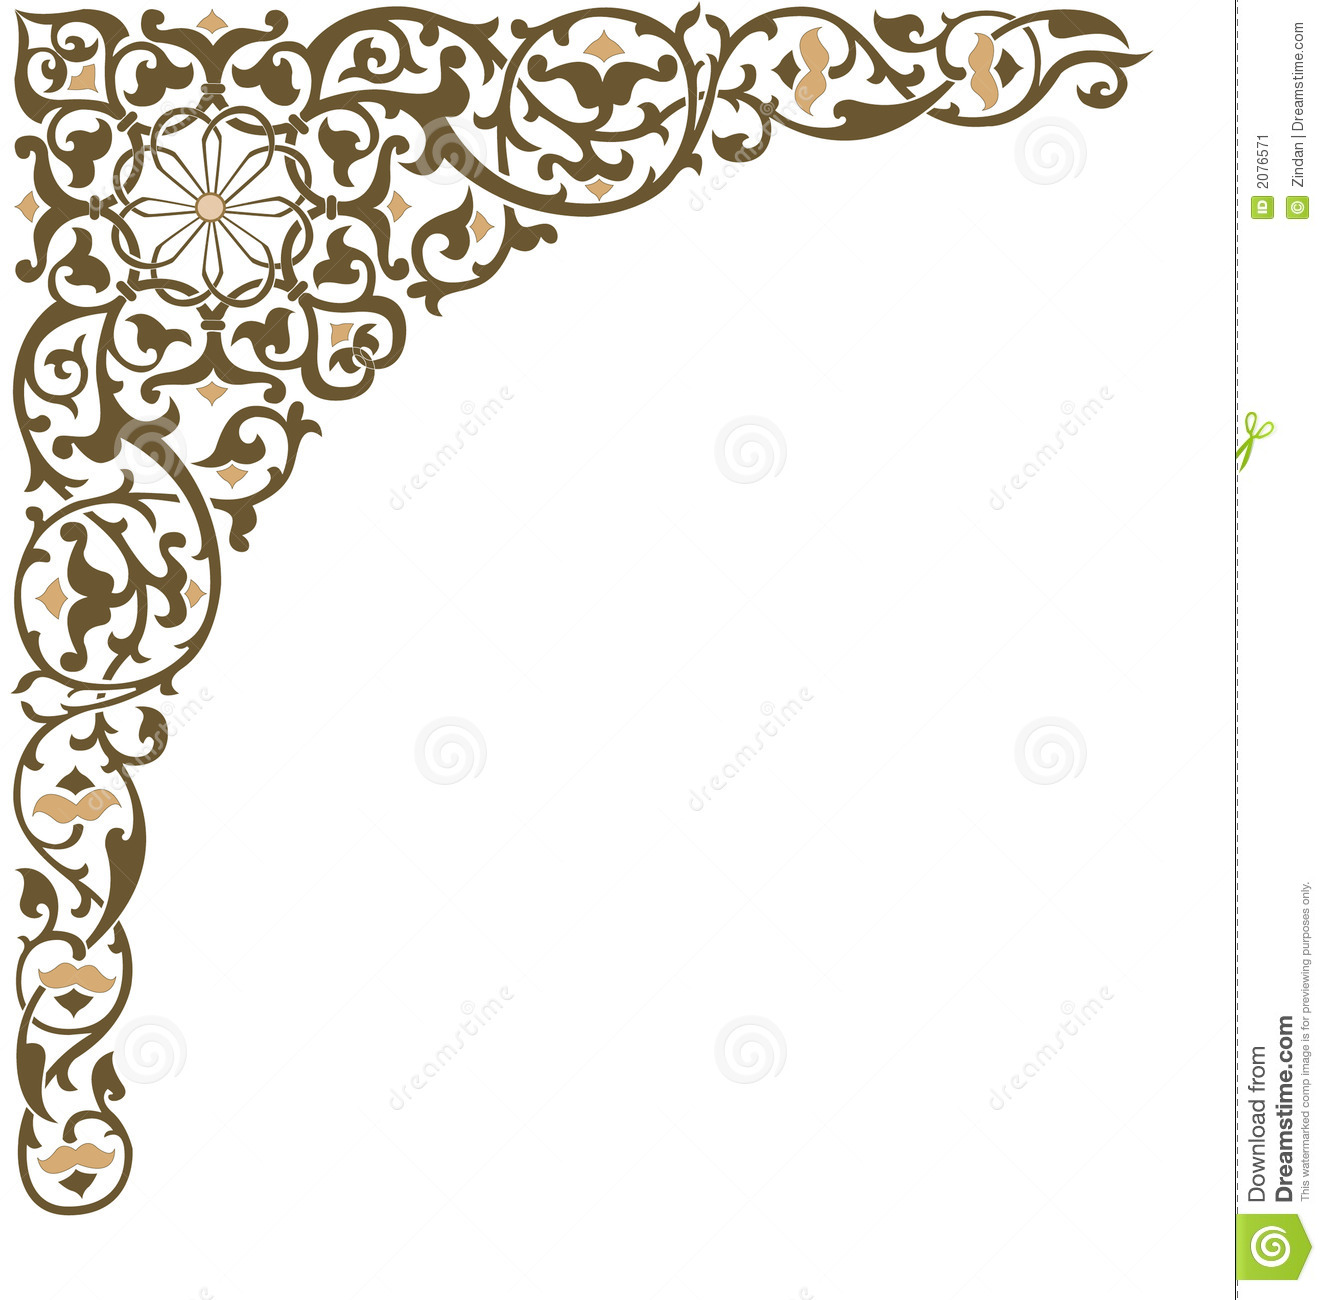 more similar stock images of ornate frame corner